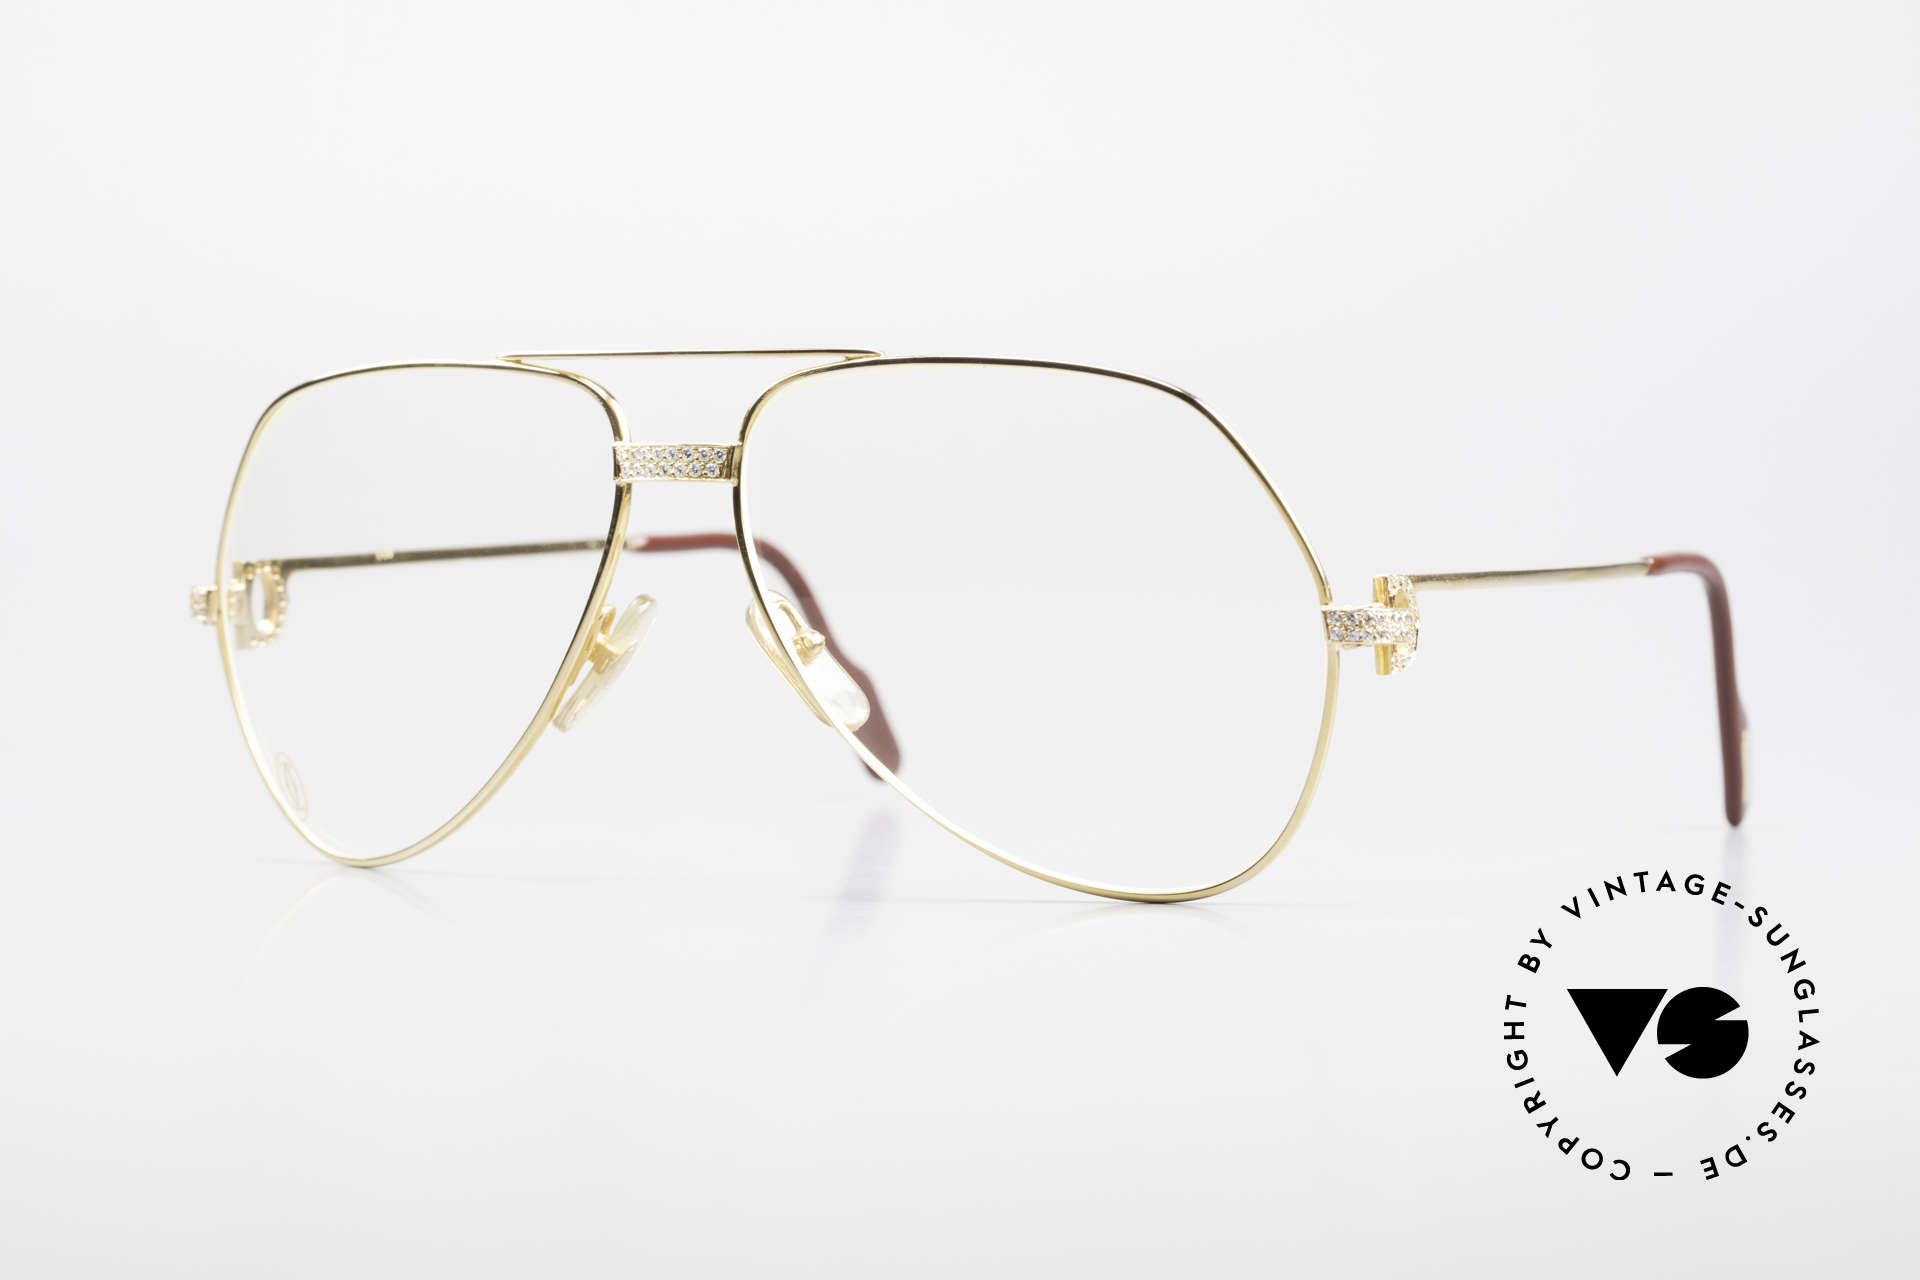 """Cartier Grand Pavage Diamond Glasses Solid Gold, Cartier """"Joaillerie' Collection: Vendôme 'GRAND PAVAGE', Made for Men"""